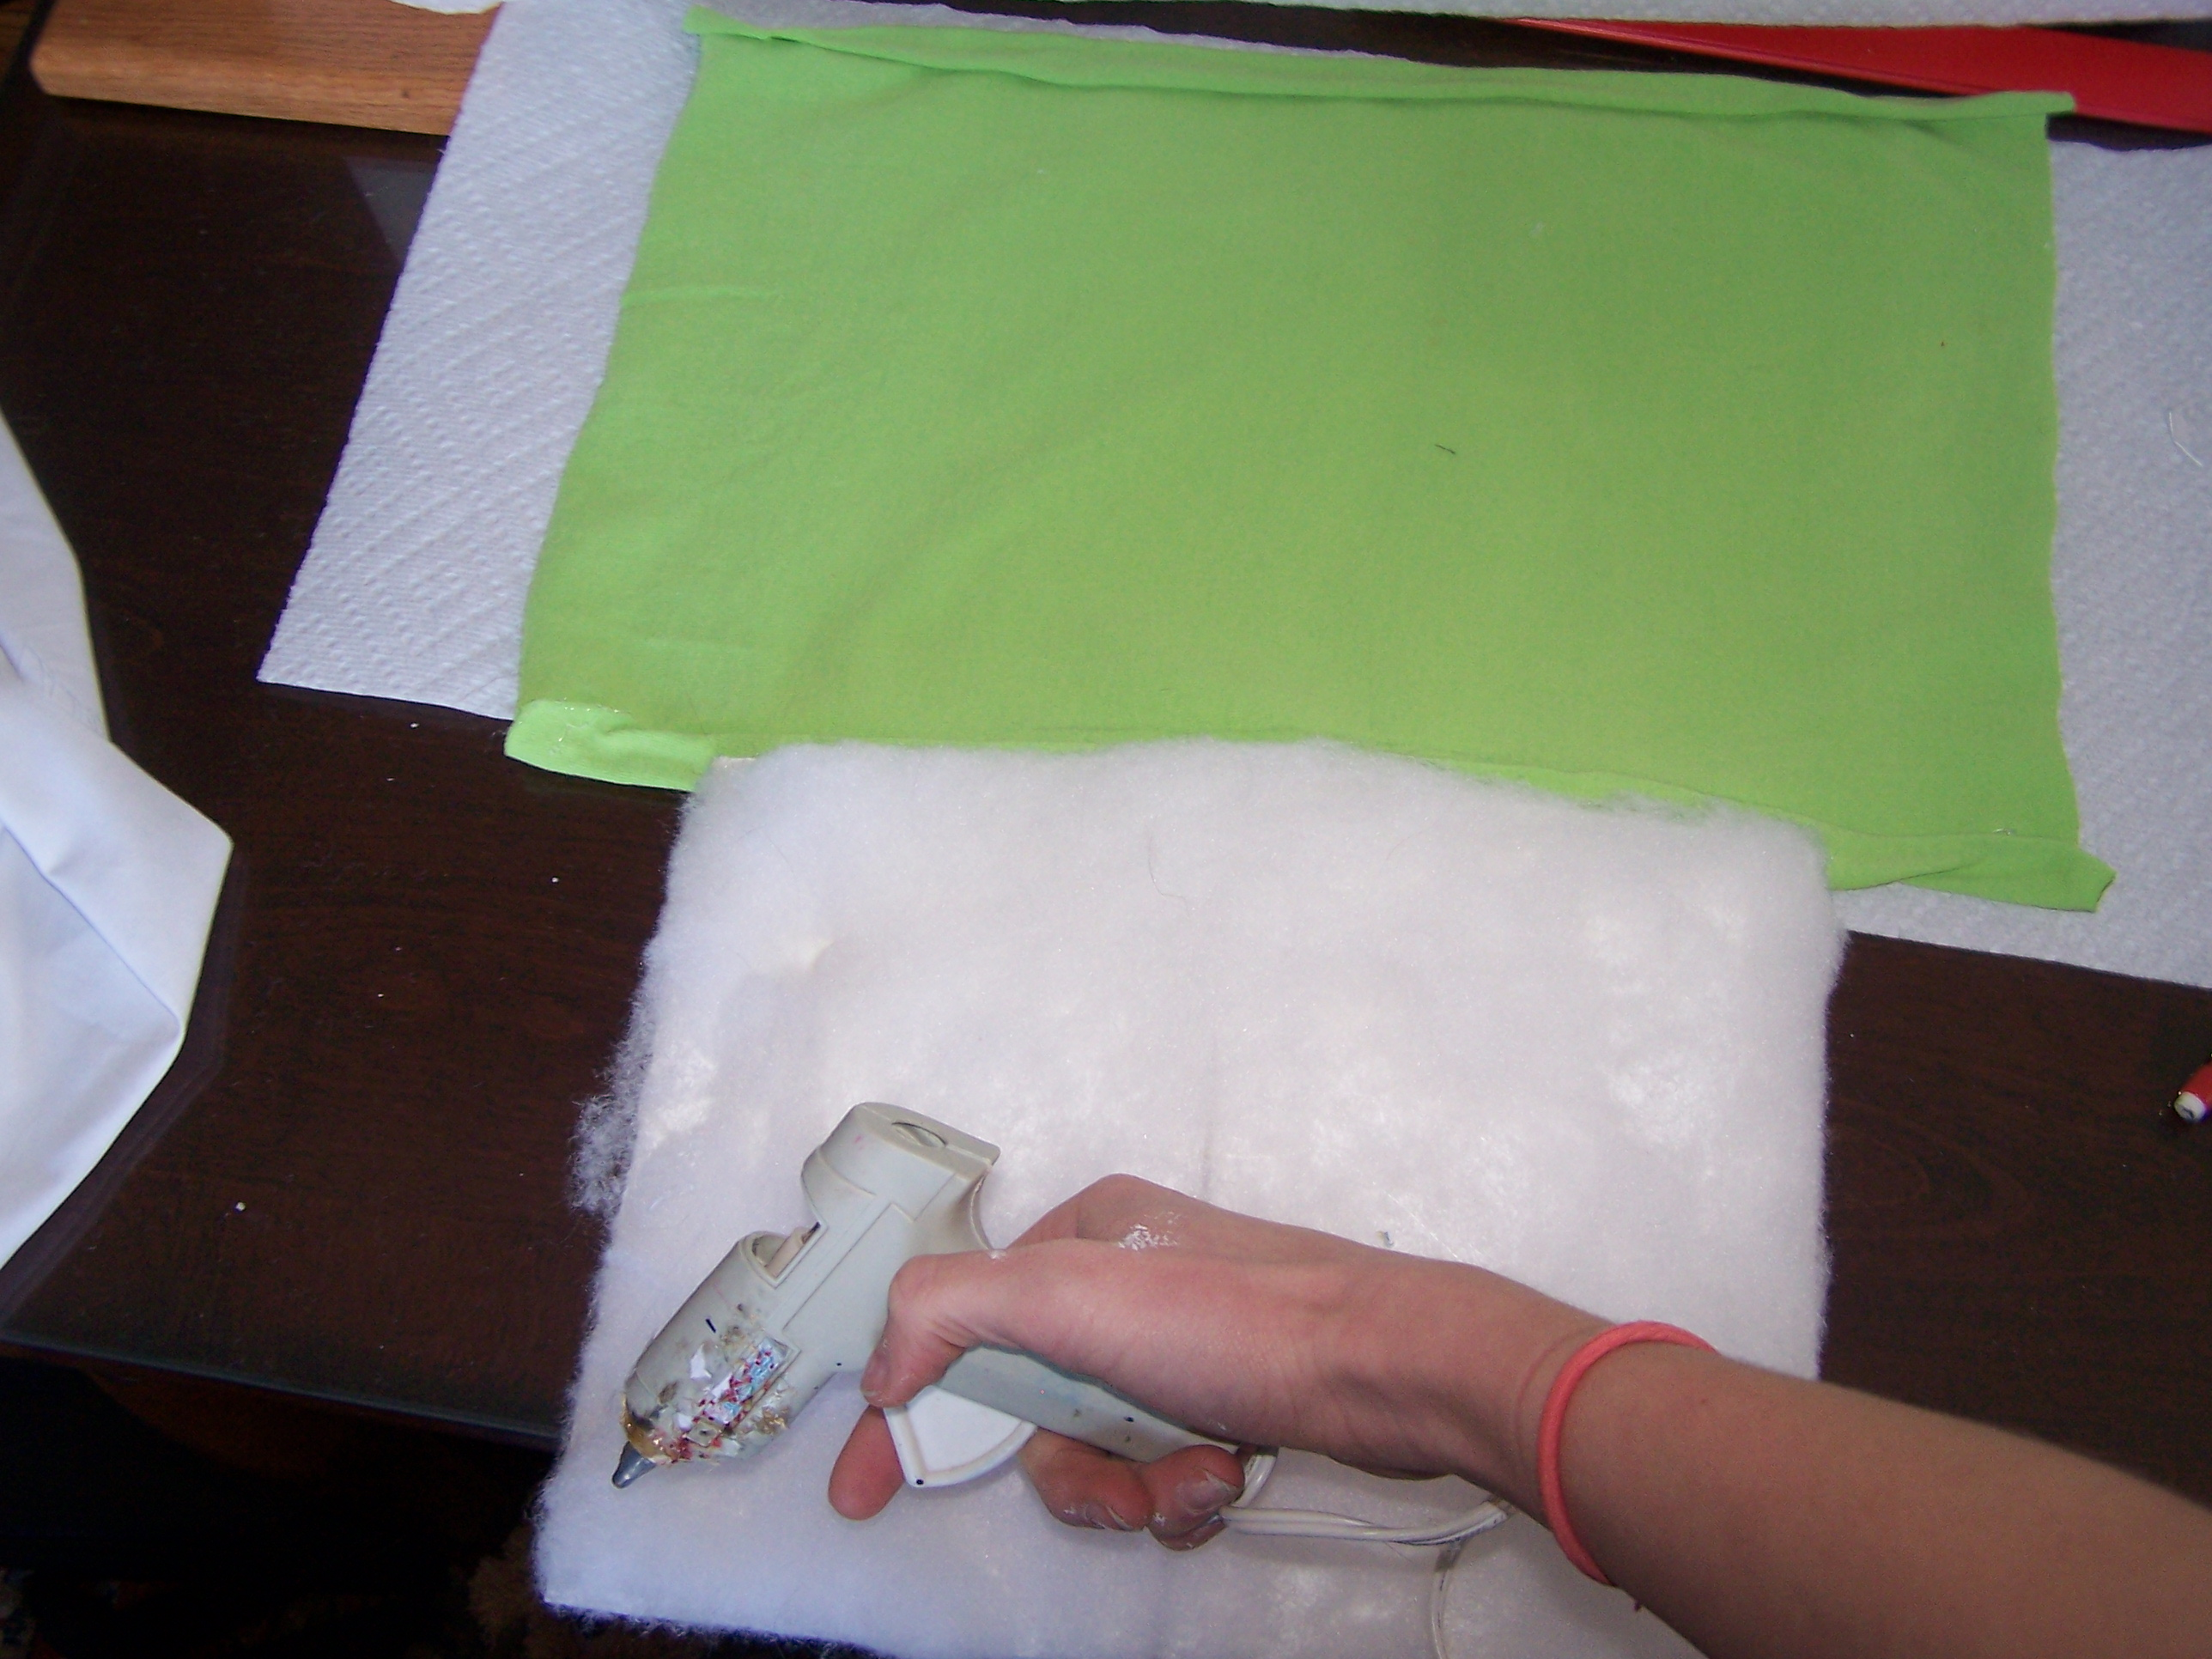 Picture of Covering the Journal: Top and Bottom Edges